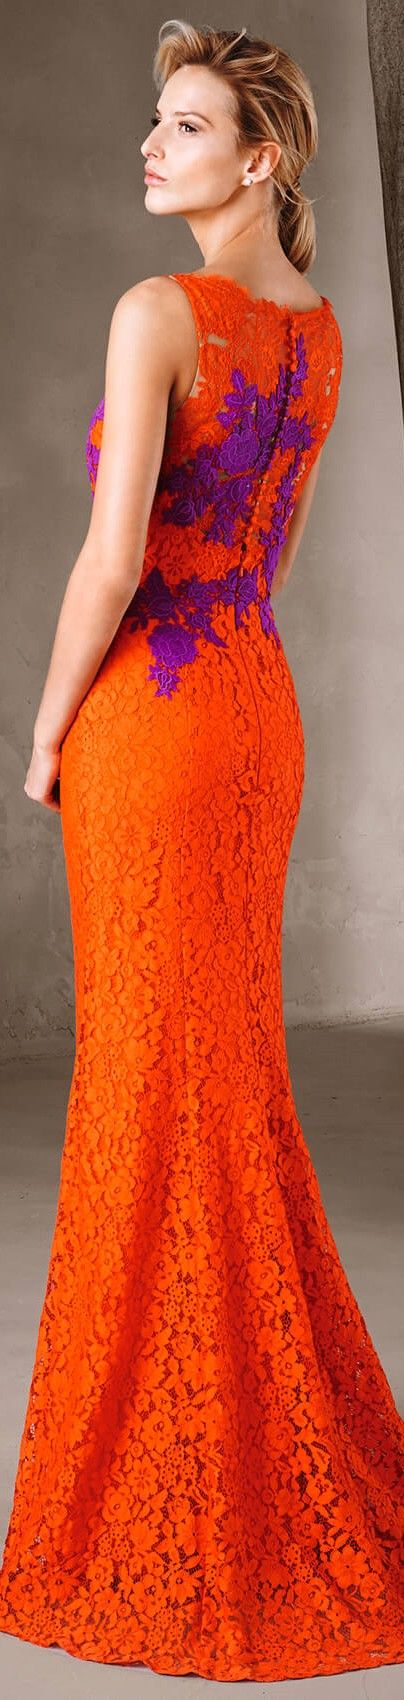 orange lace dress women fashion outfit clothing style apparel @roressclothes closet ideas Pronovias 2017